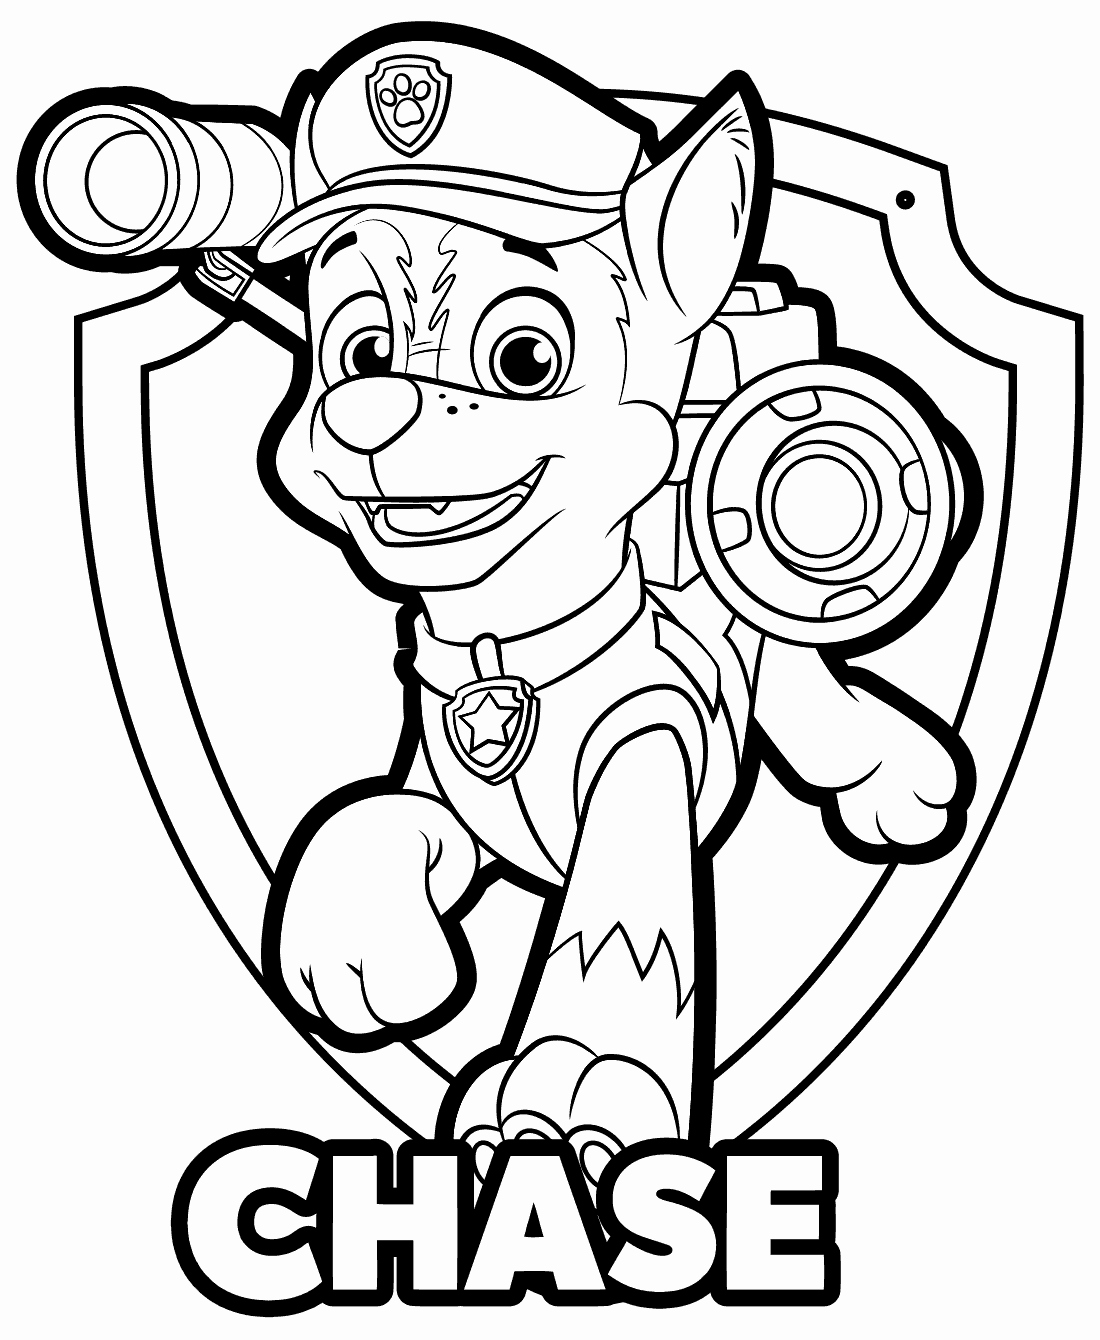 coloring paw patrol chase chase paw patrol coloring pages to download and print for free coloring chase paw patrol